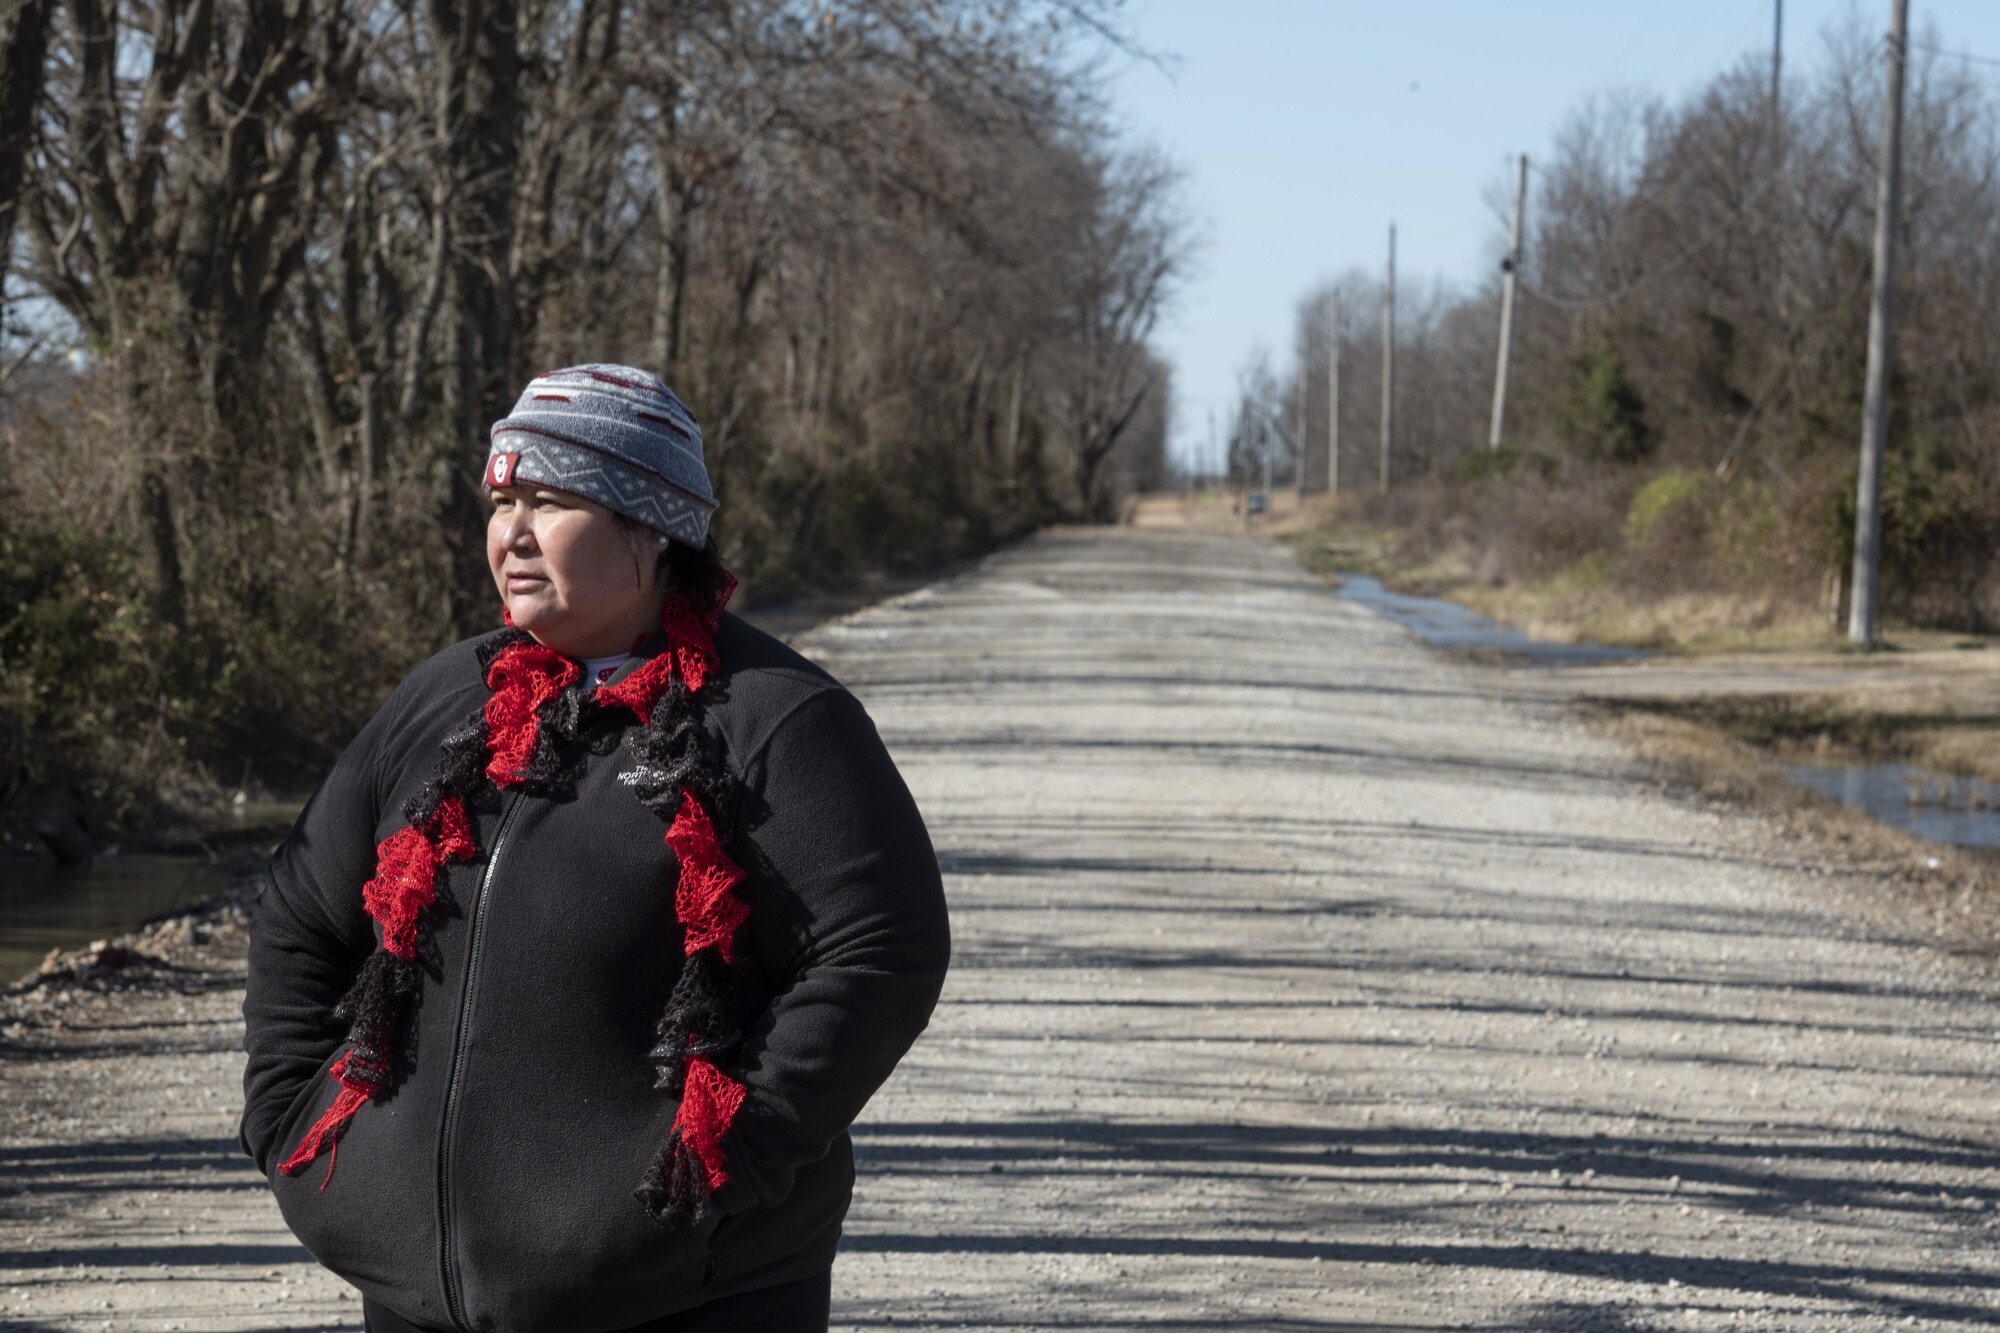 Pam Smith on a dirt road near the area where her niece, Aubrey Dameron, was last seen in March.